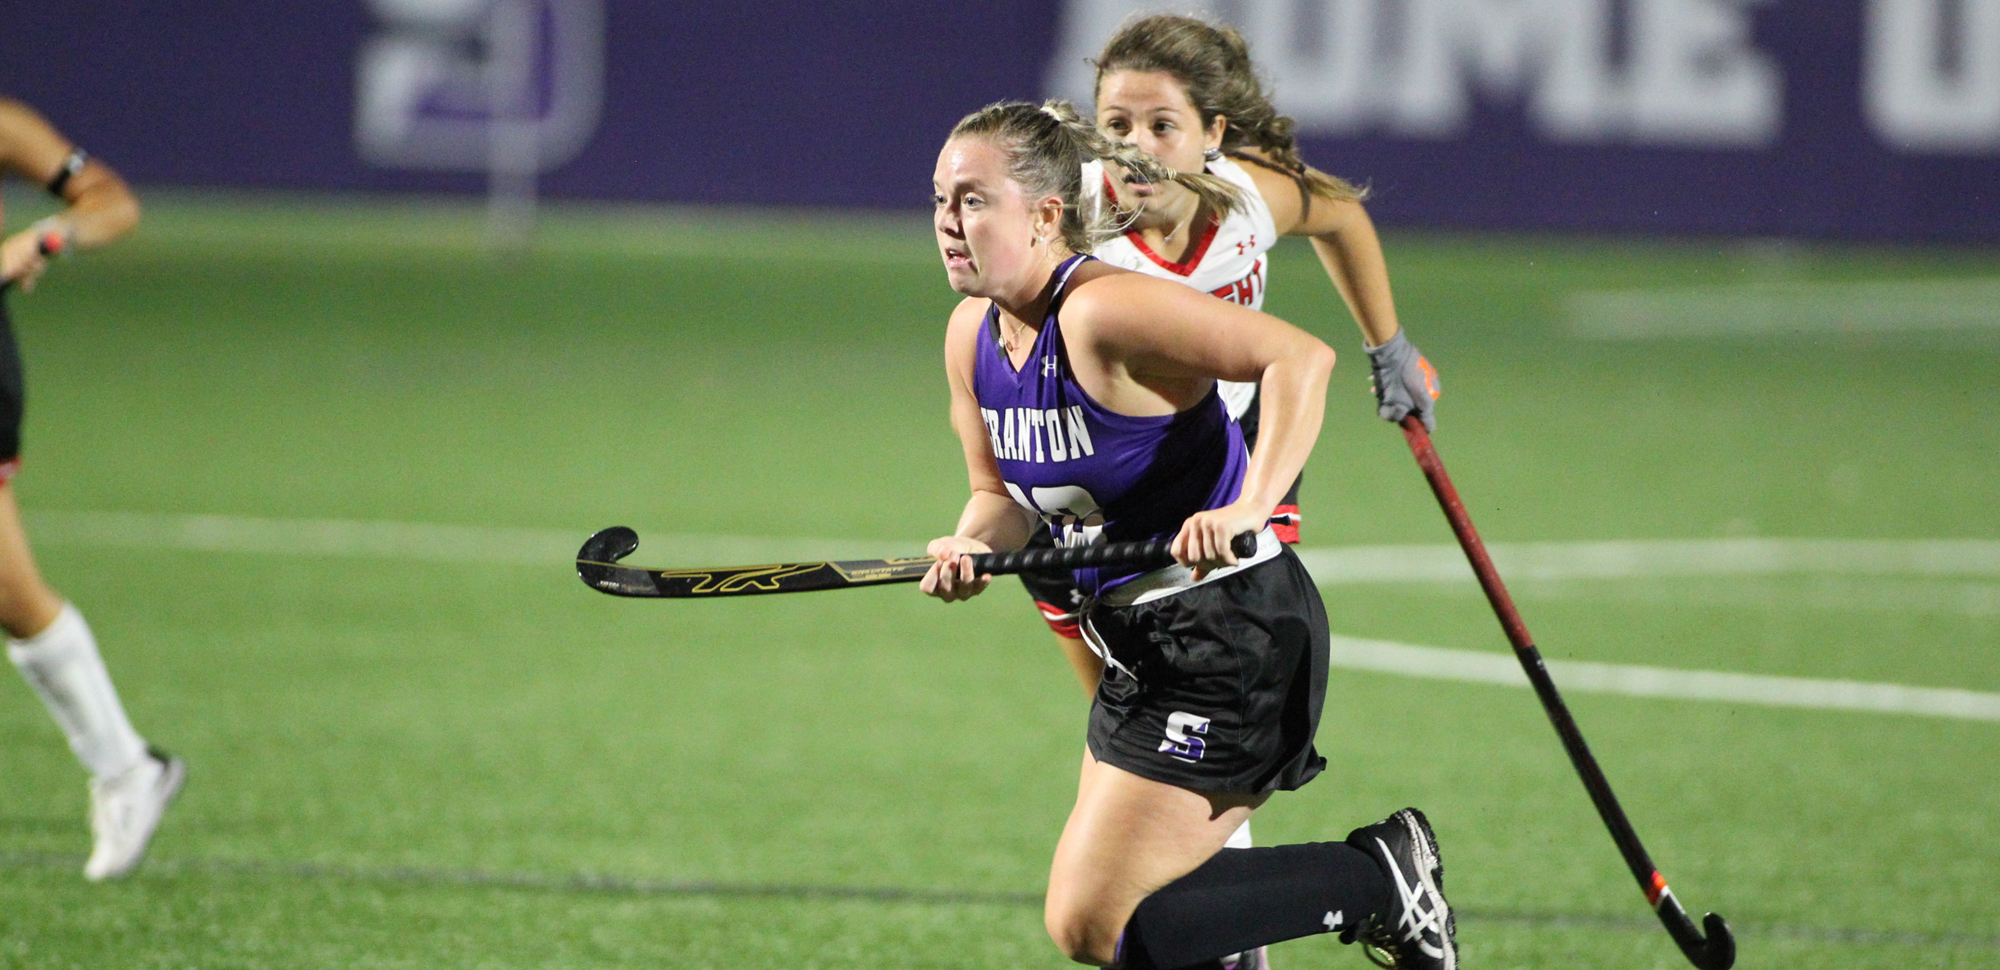 Gracie McClatchy Selected to Play in NFHCA Division III Senior All-Star Game